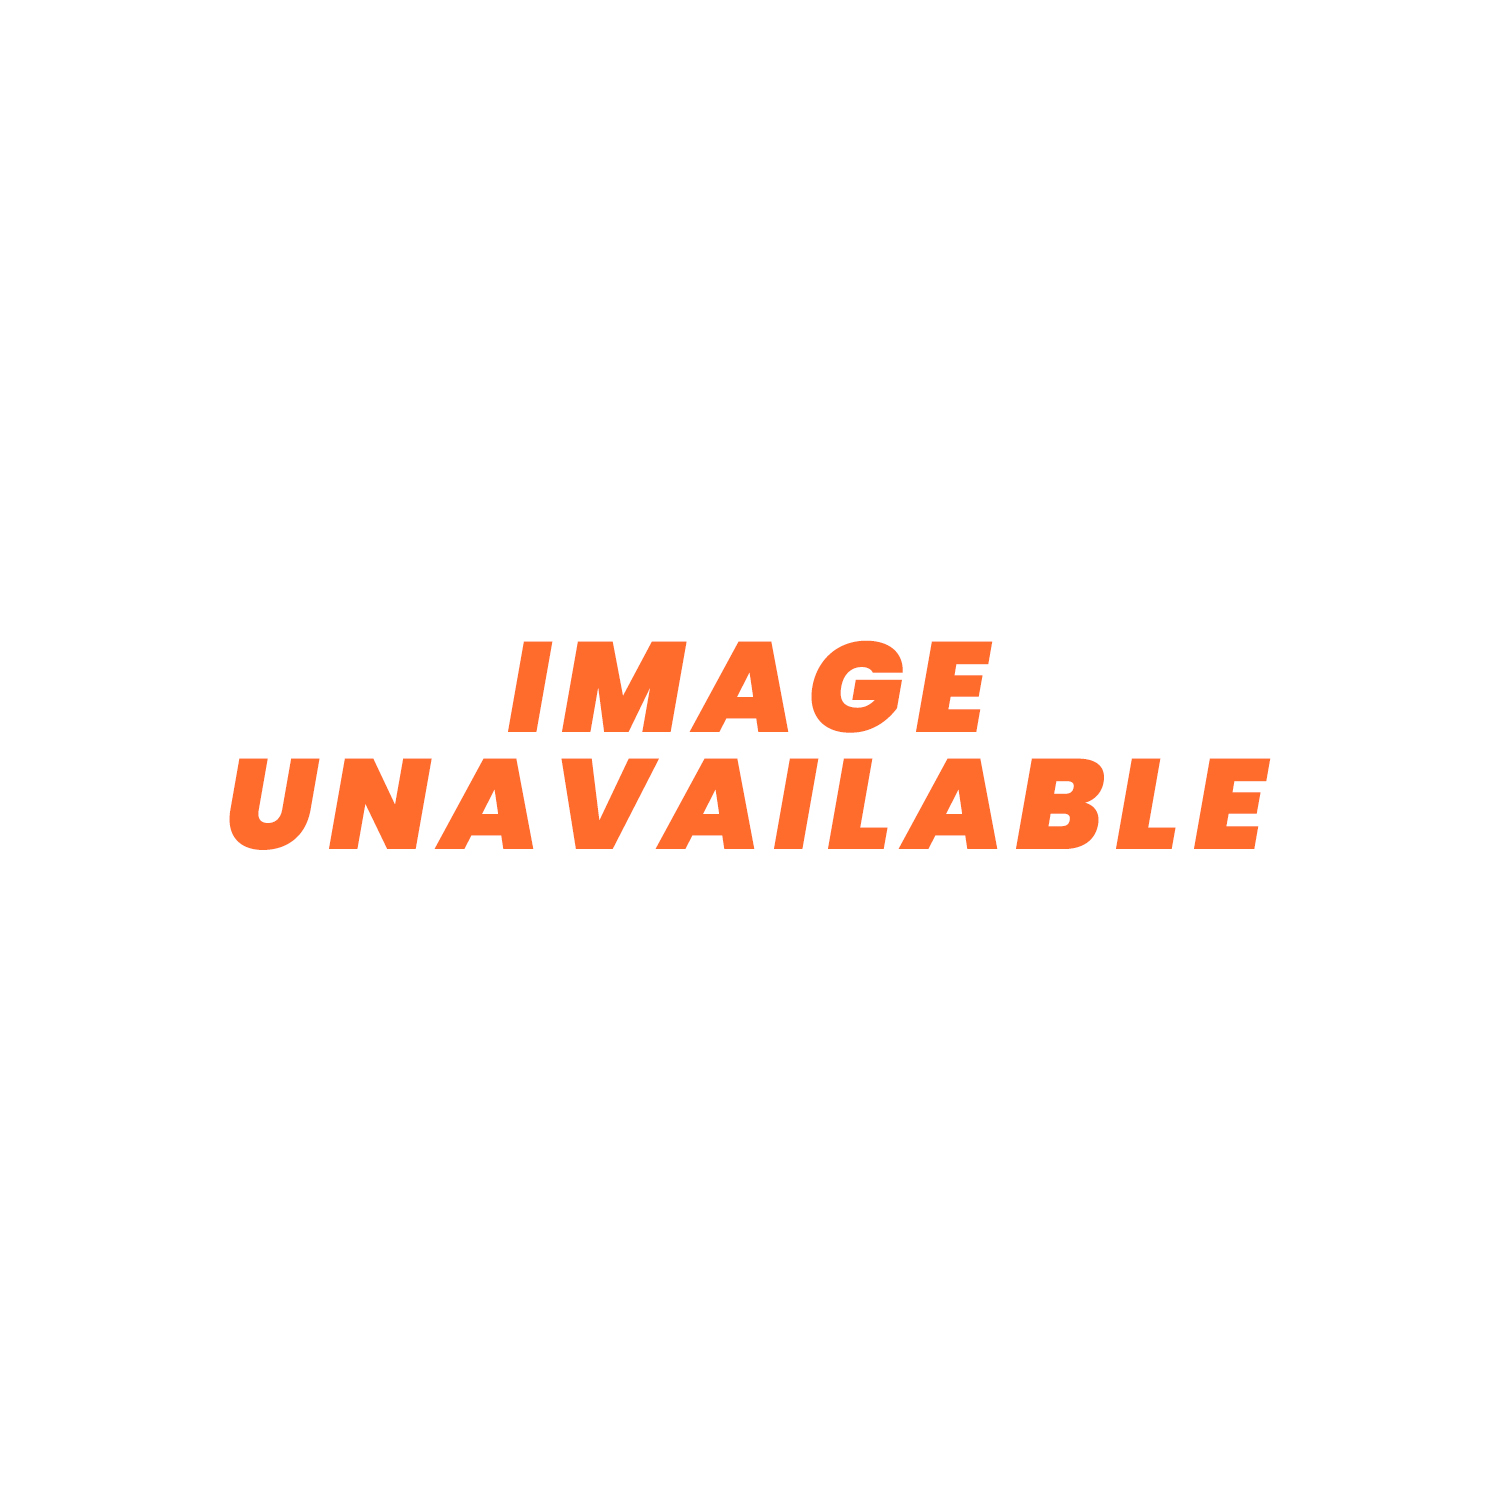 siroco air conditioning unit heater vertical